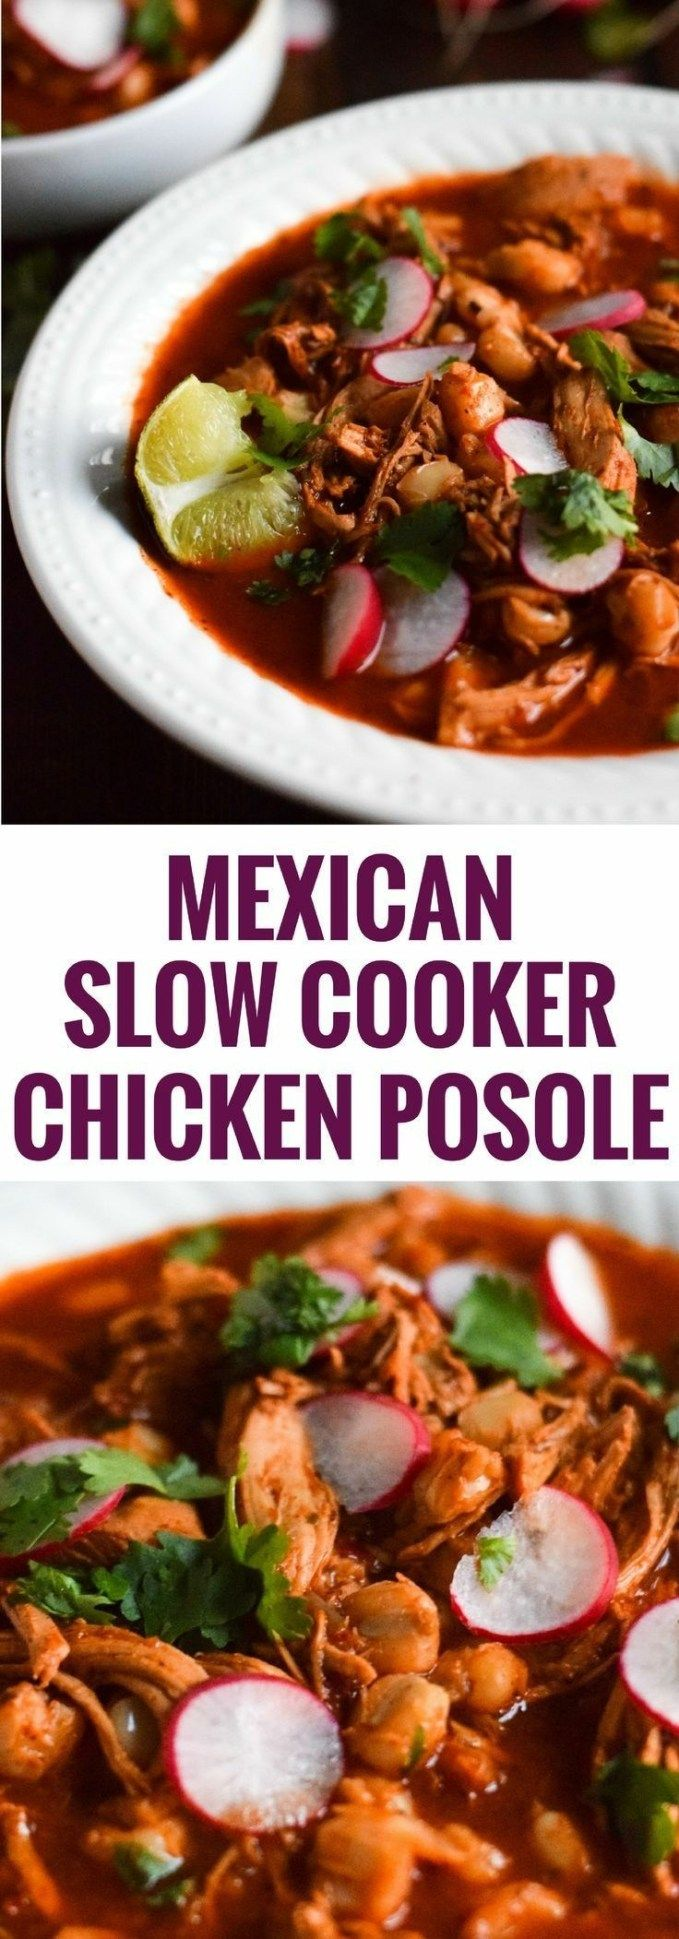 Slow Cooker Chicken Posole - Isabel Eats {Easy Mexican Recipes} #easymexicanfoodrecipes